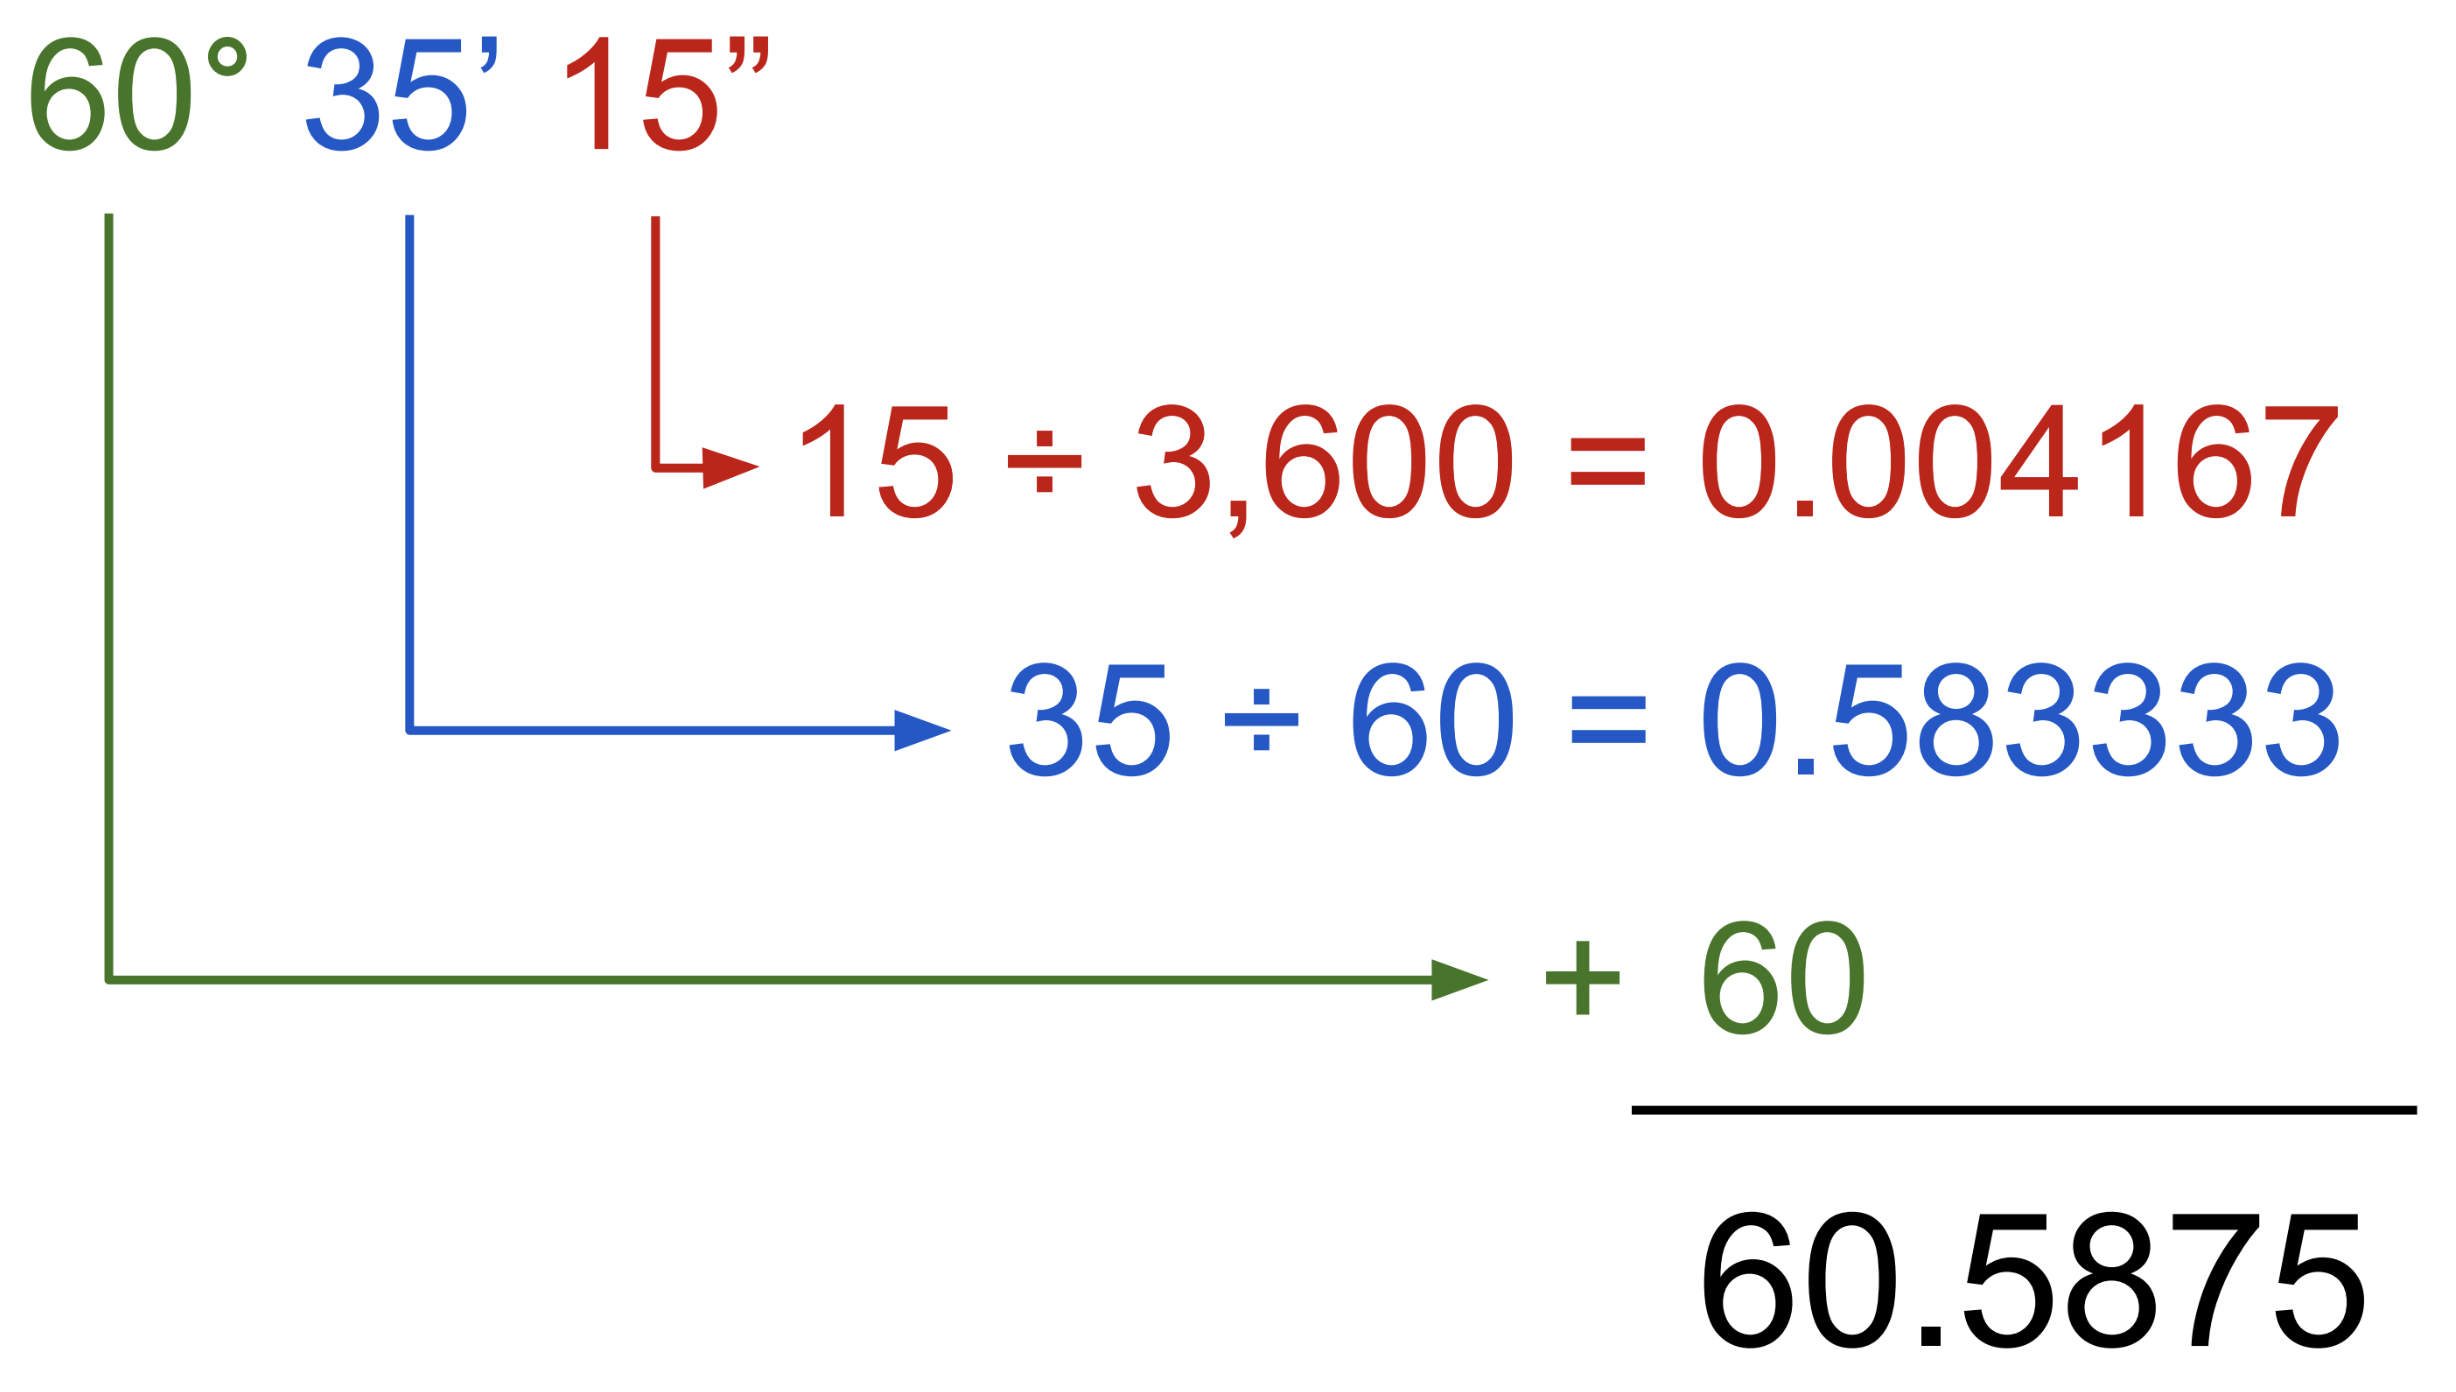 graphic showing how the equation to convert degrees, minutes, and seconds to decimal works